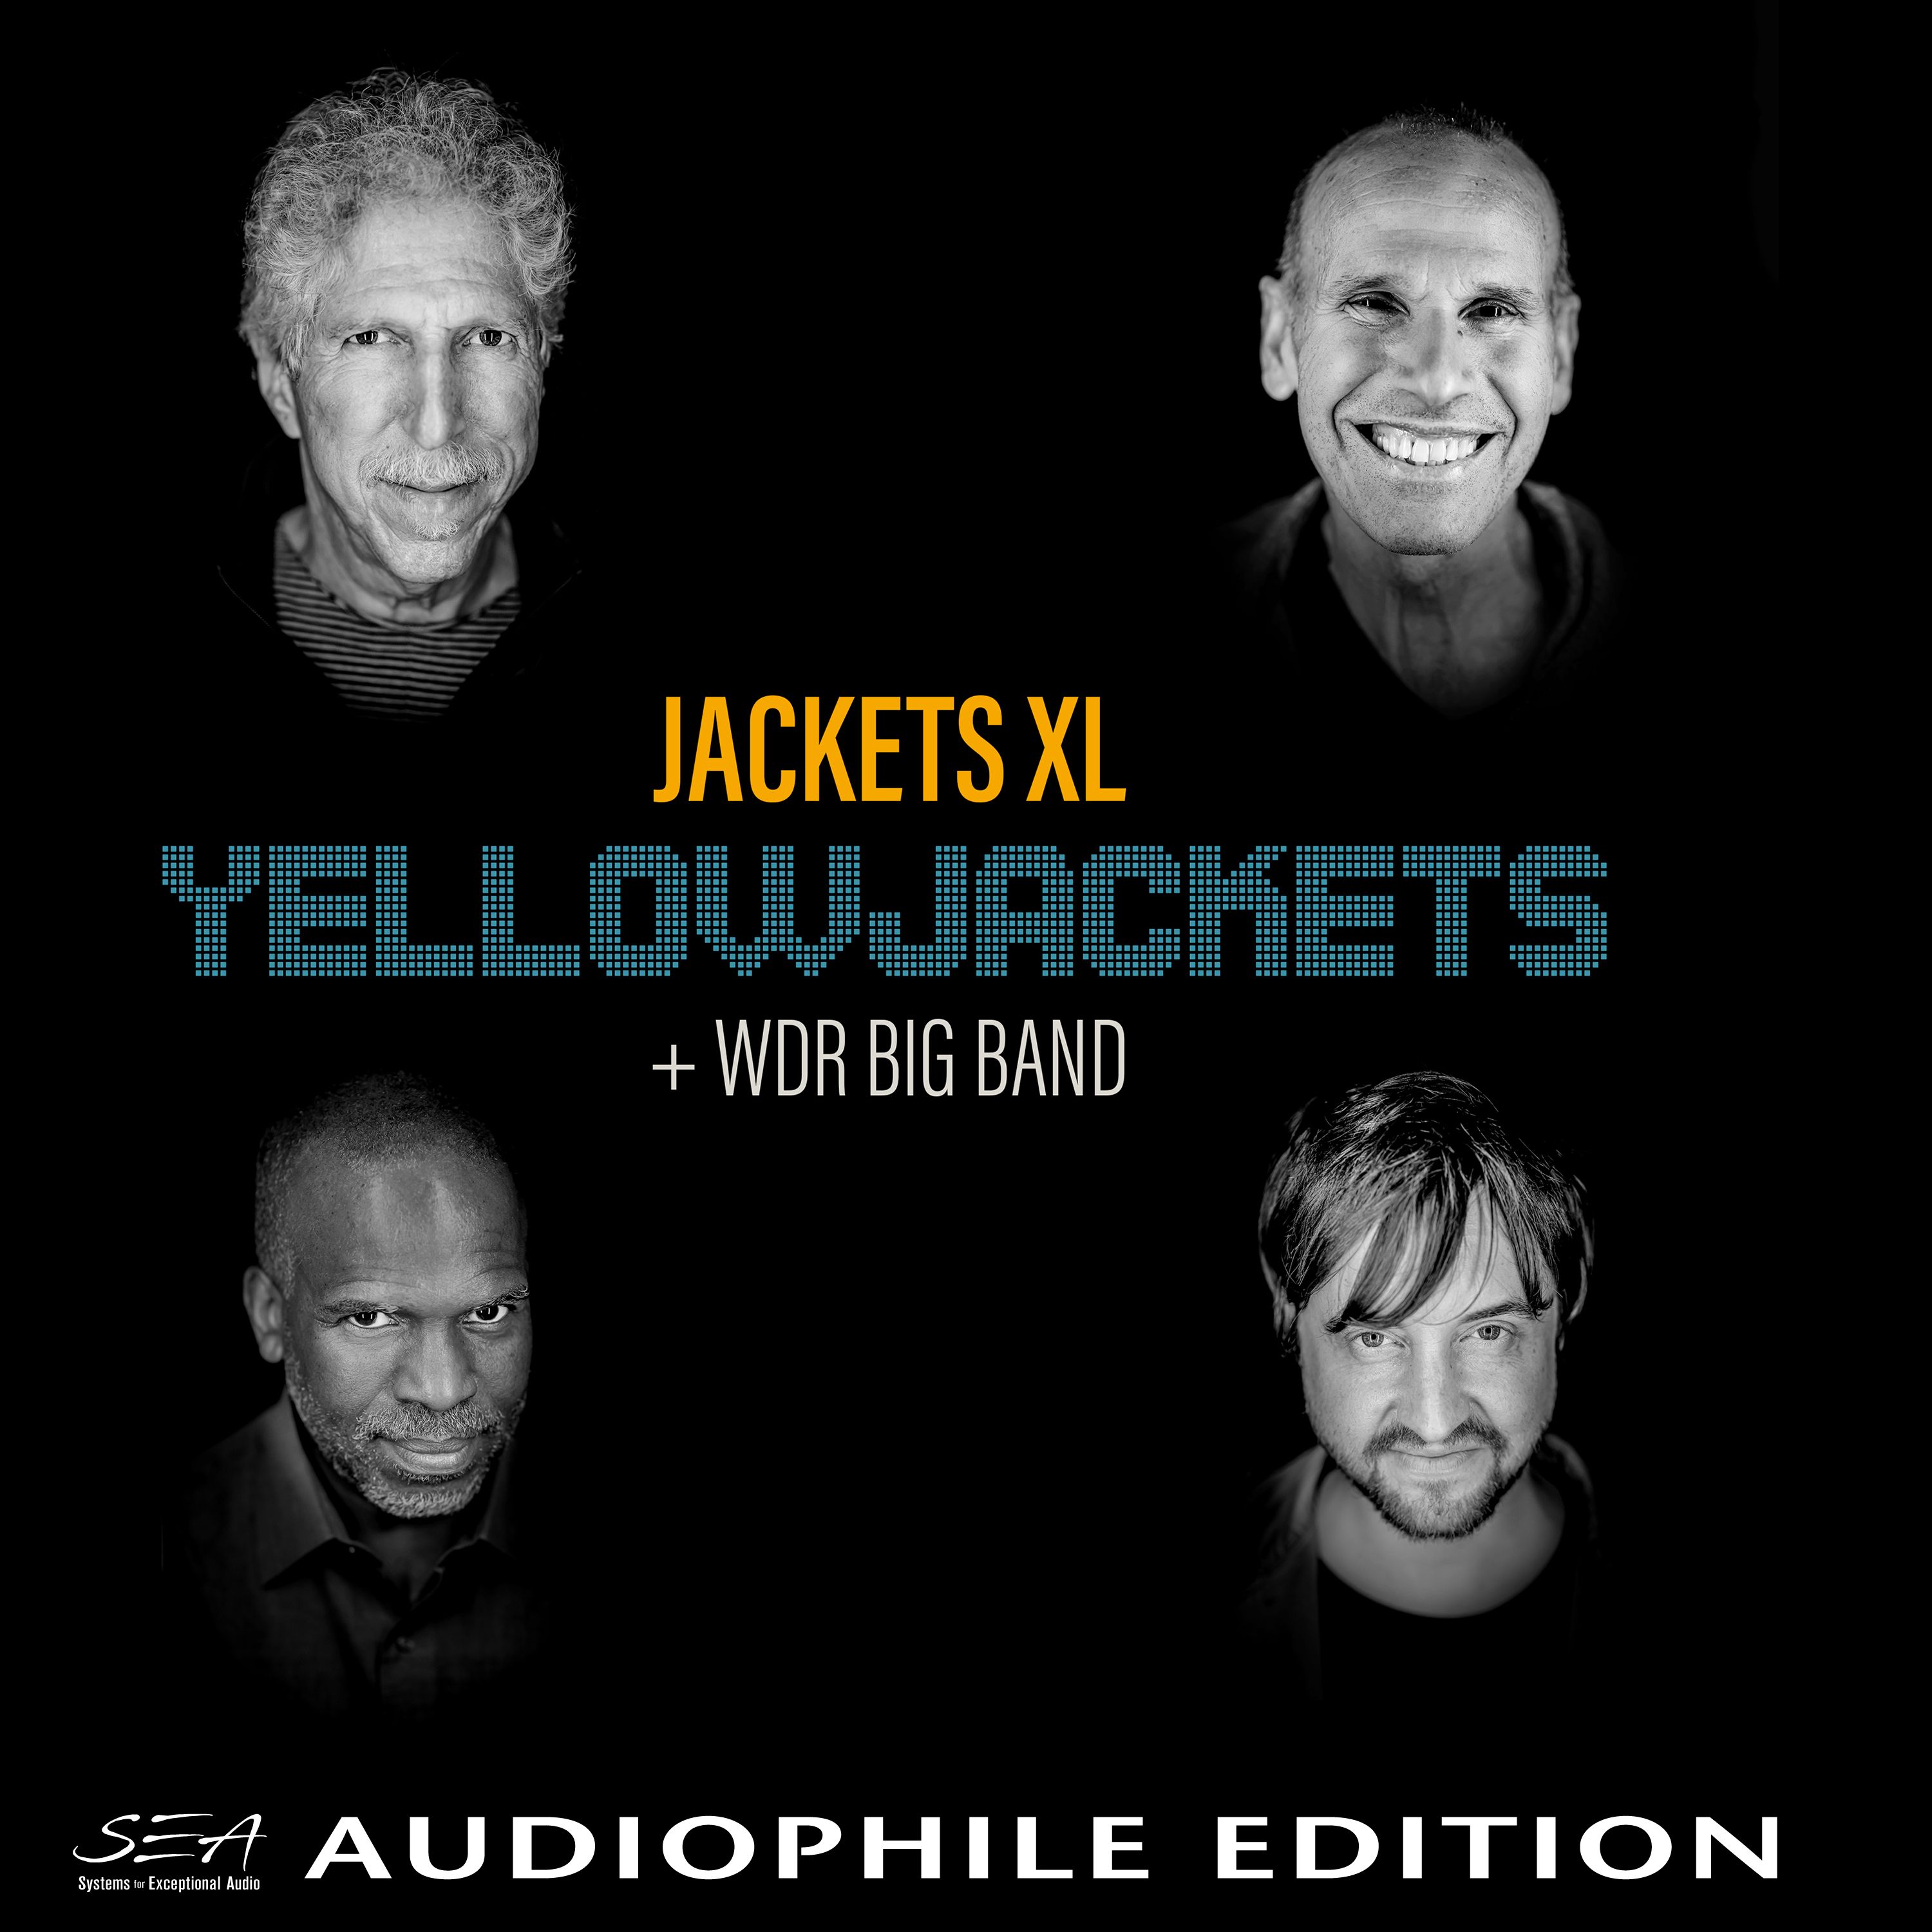 Yellowjackets - Jackets XL - Cover Image